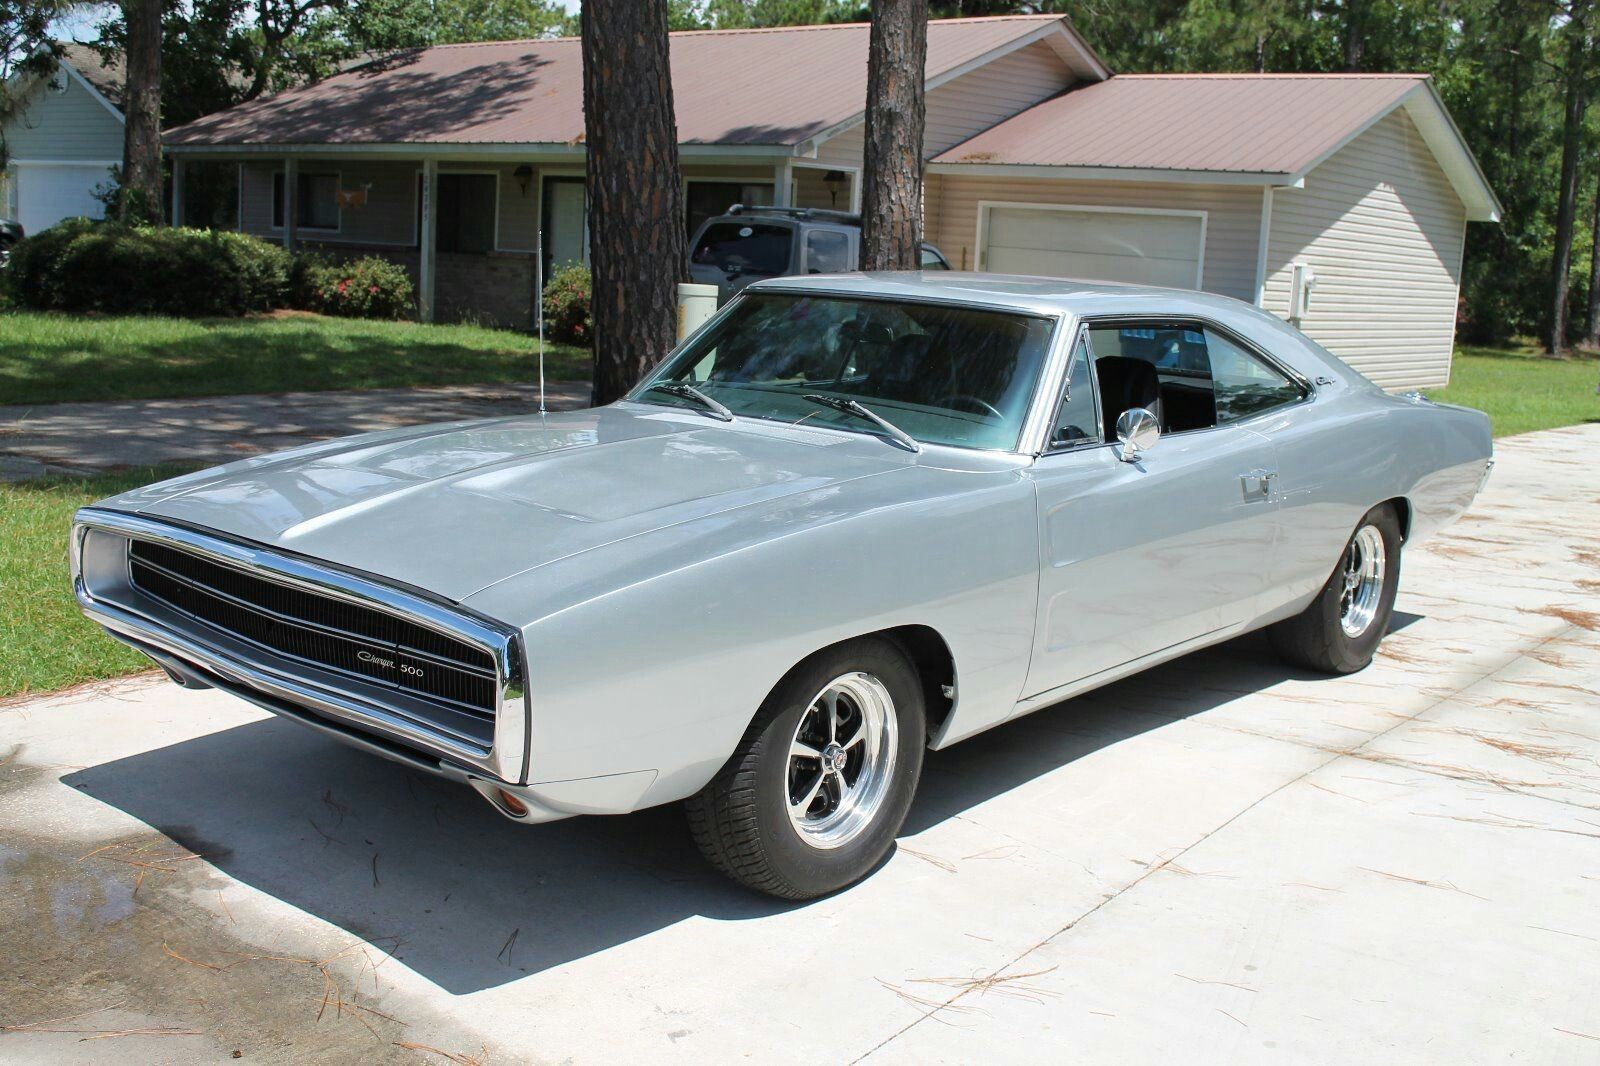 1970 Dodge Charger | Bitcoin | Pinterest | Dodge charger, Cars and Mopar